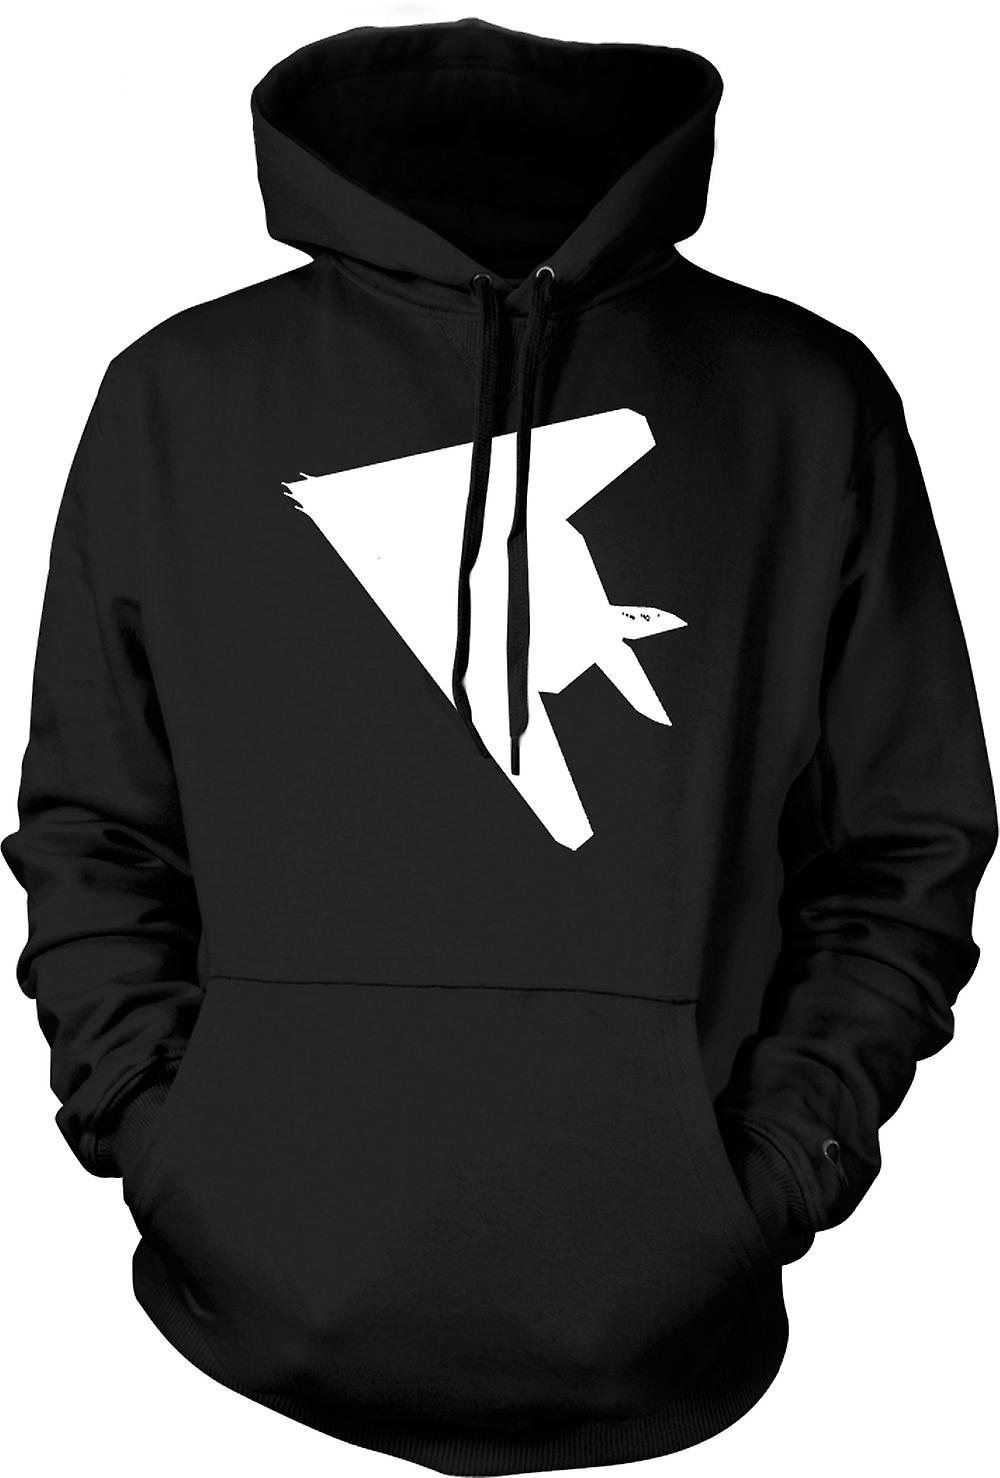 Mens Hoodie - Lockheed F-117 Nighthawk - Stealth Fighter Underside